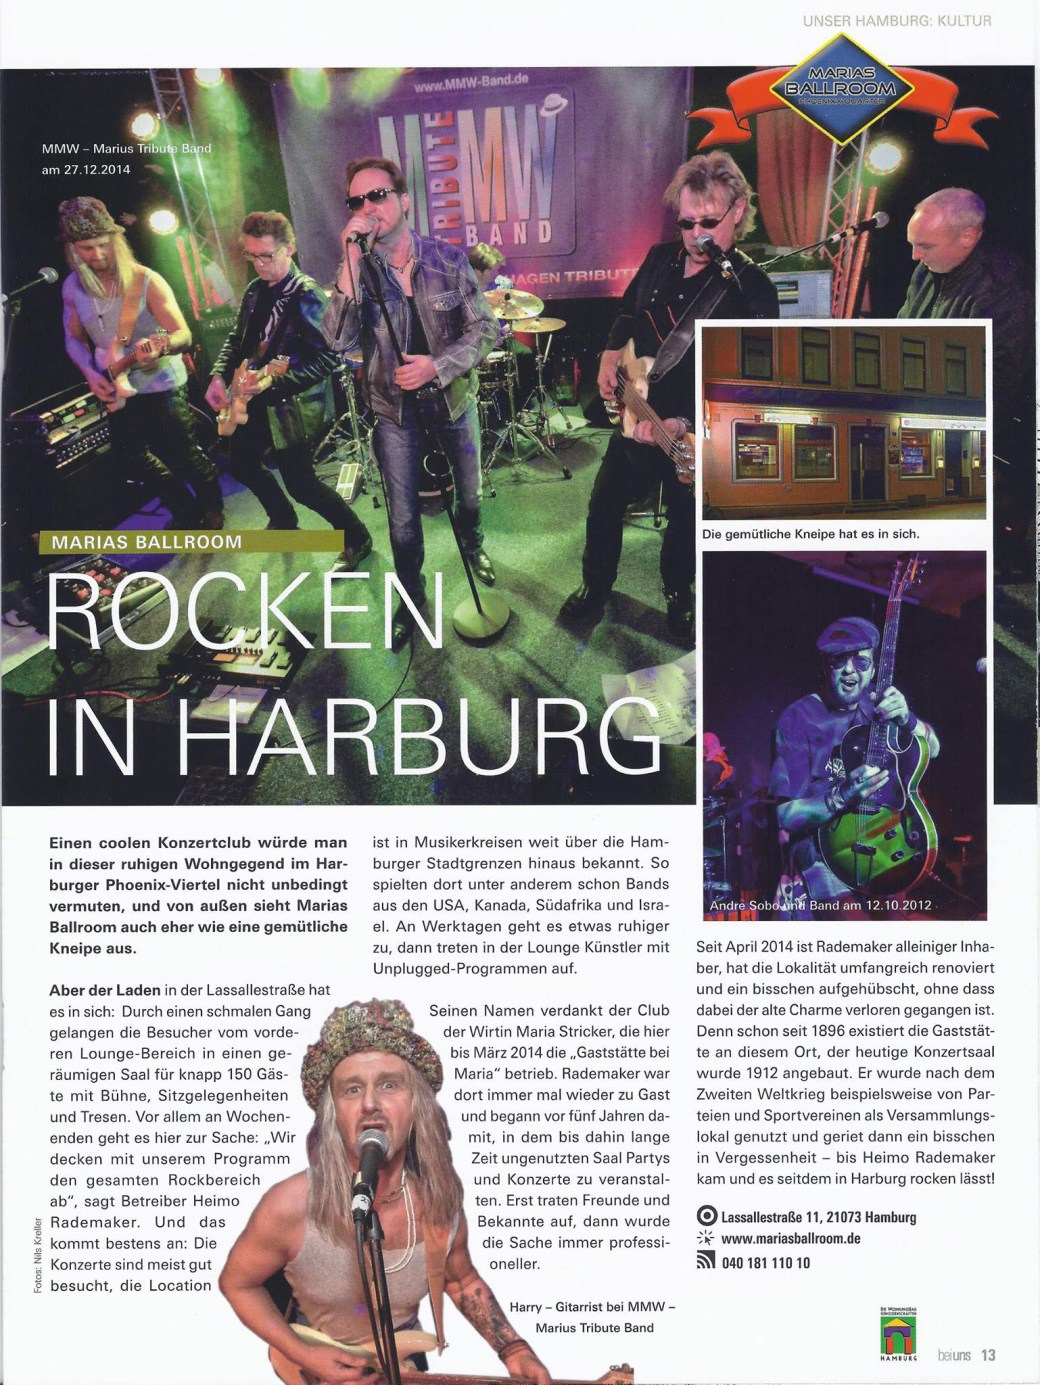 Rocken in Harburg